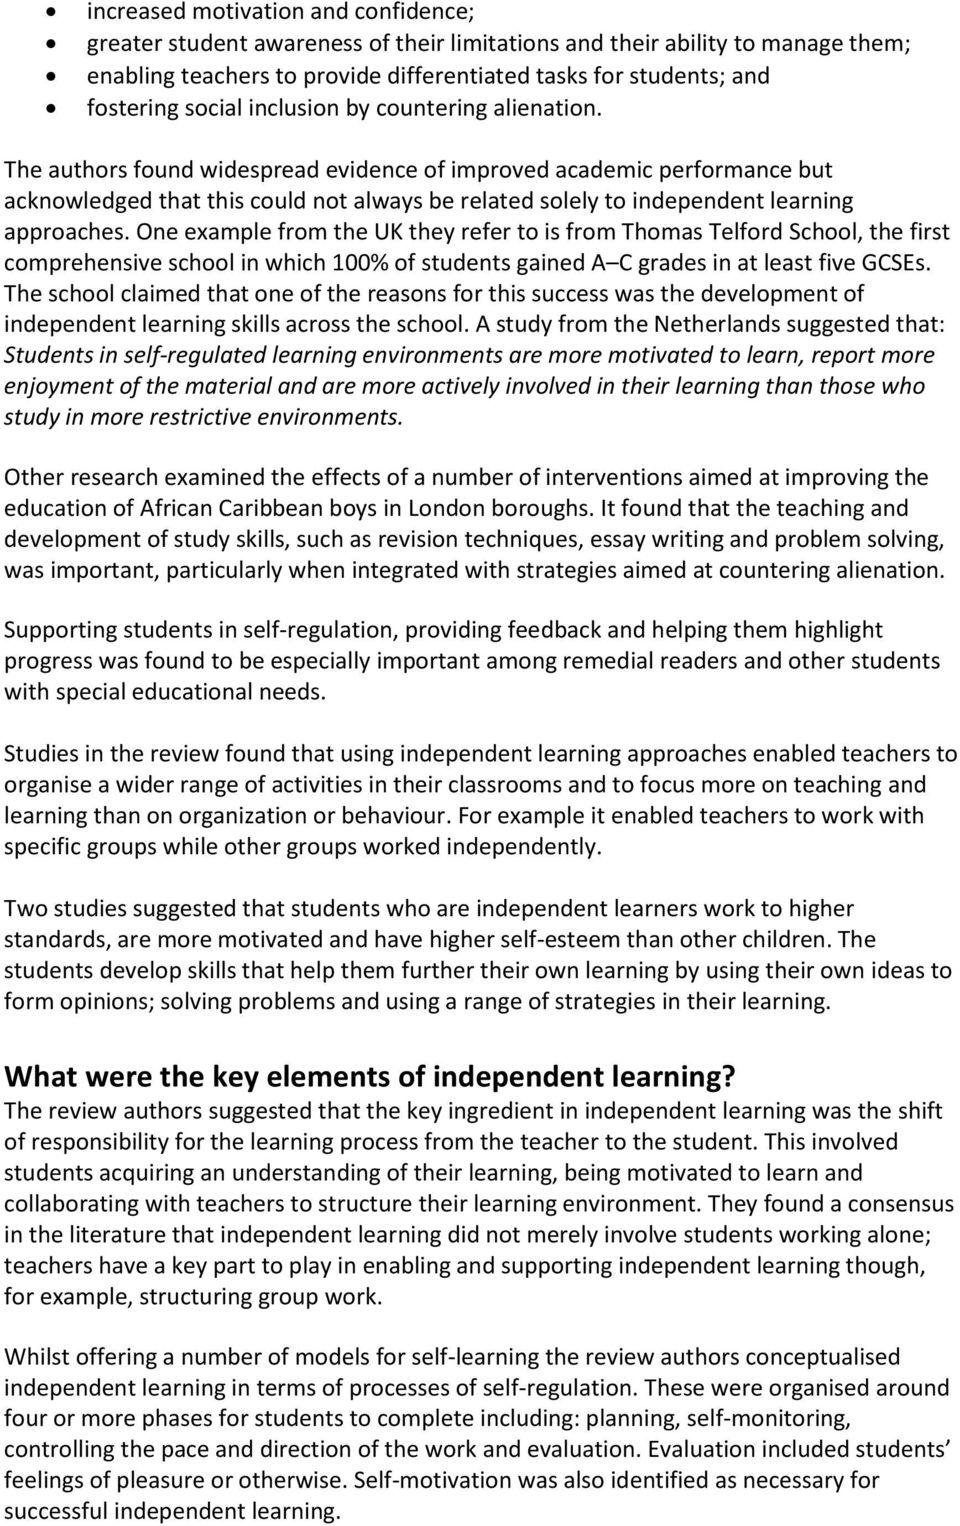 What is independent learning and what are the benefits for